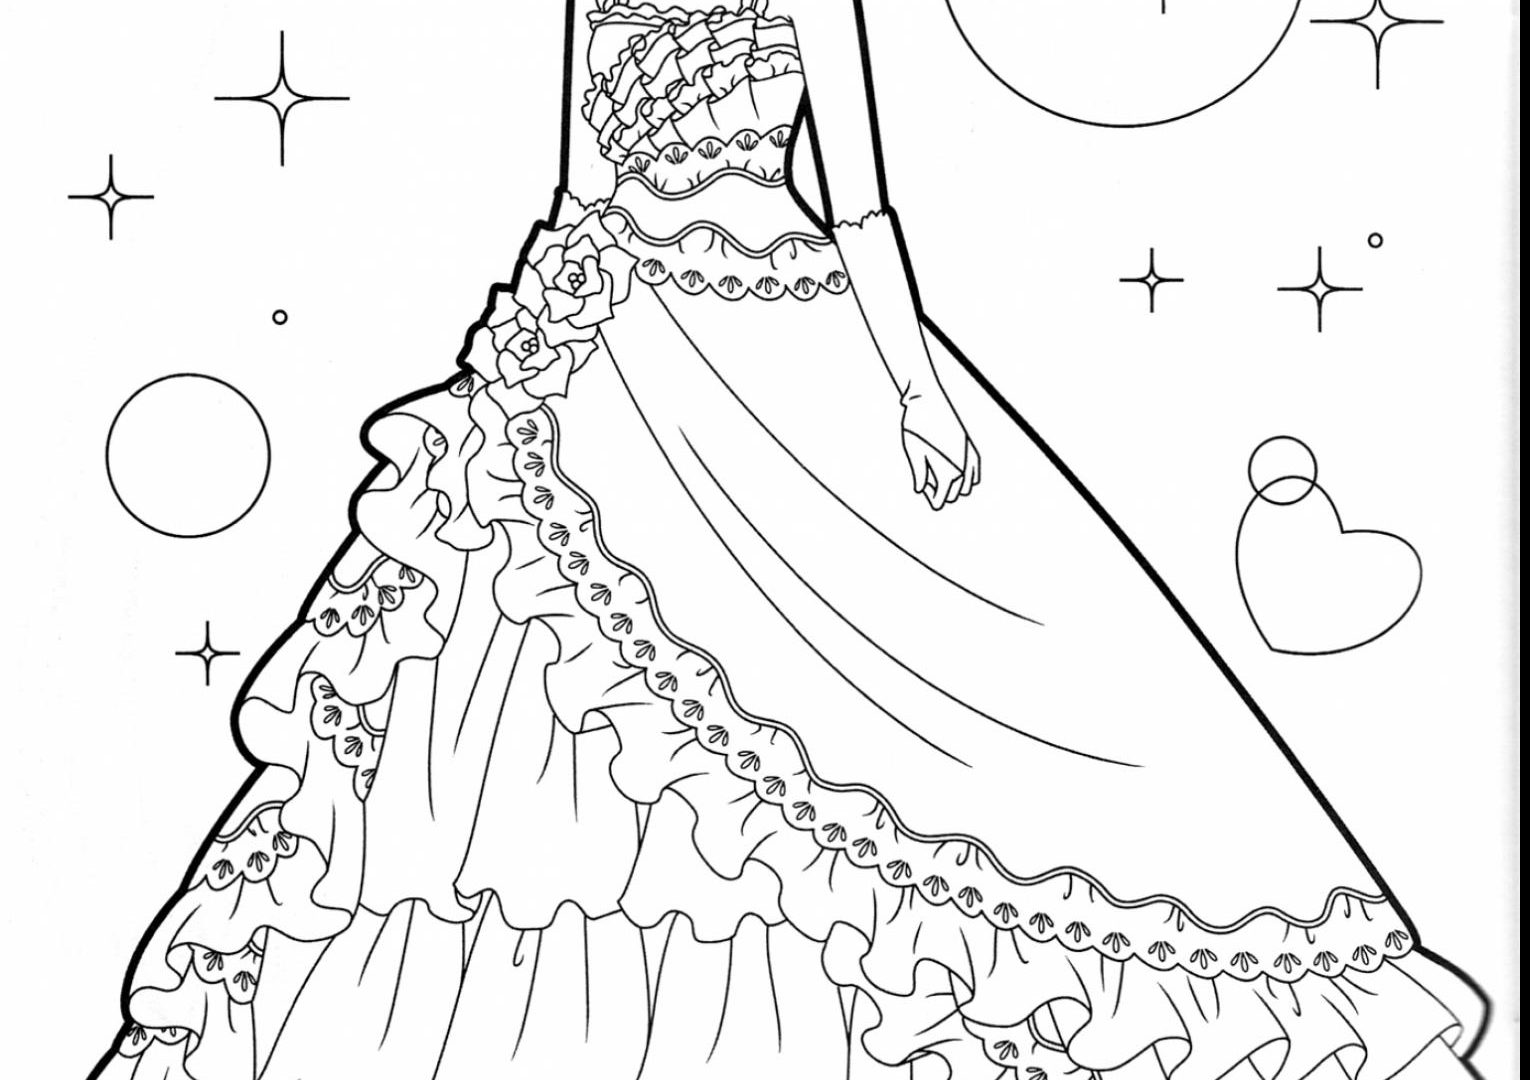 image regarding Anime Girl Coloring Pages Printable referred to as Manga Female Coloring Internet pages at  No cost for